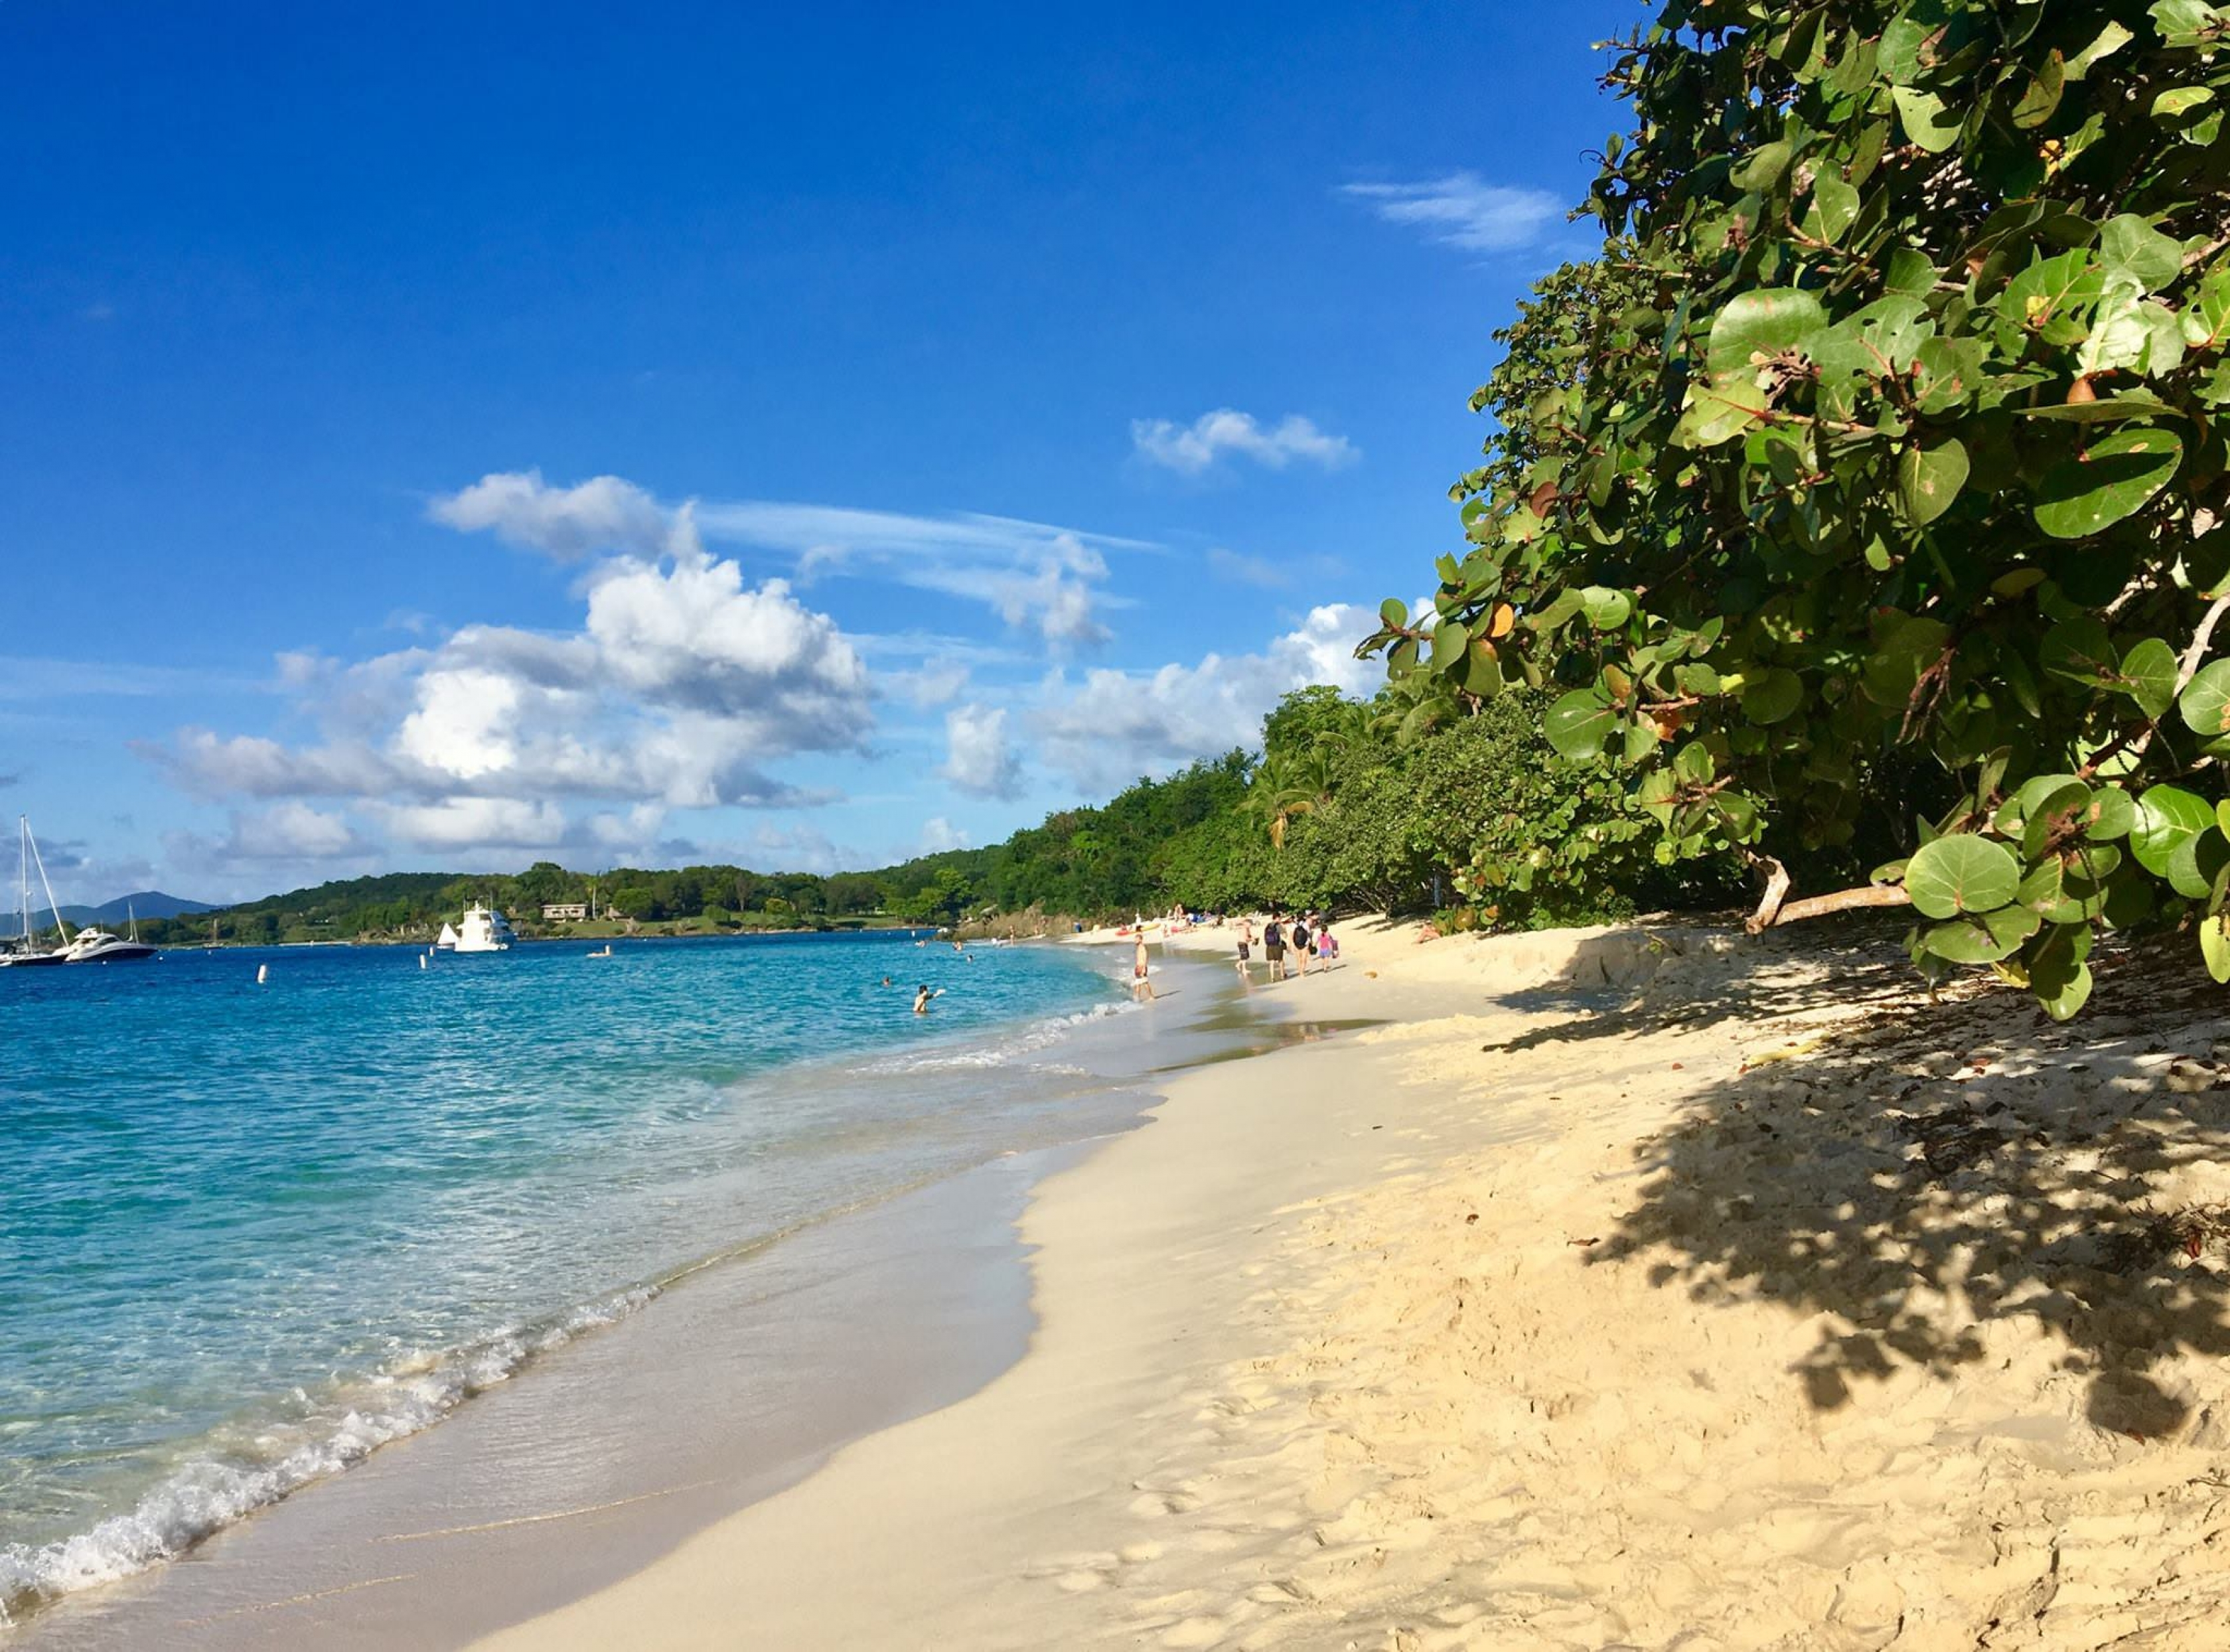 The Virgin Islands offer many swimming opportunities.